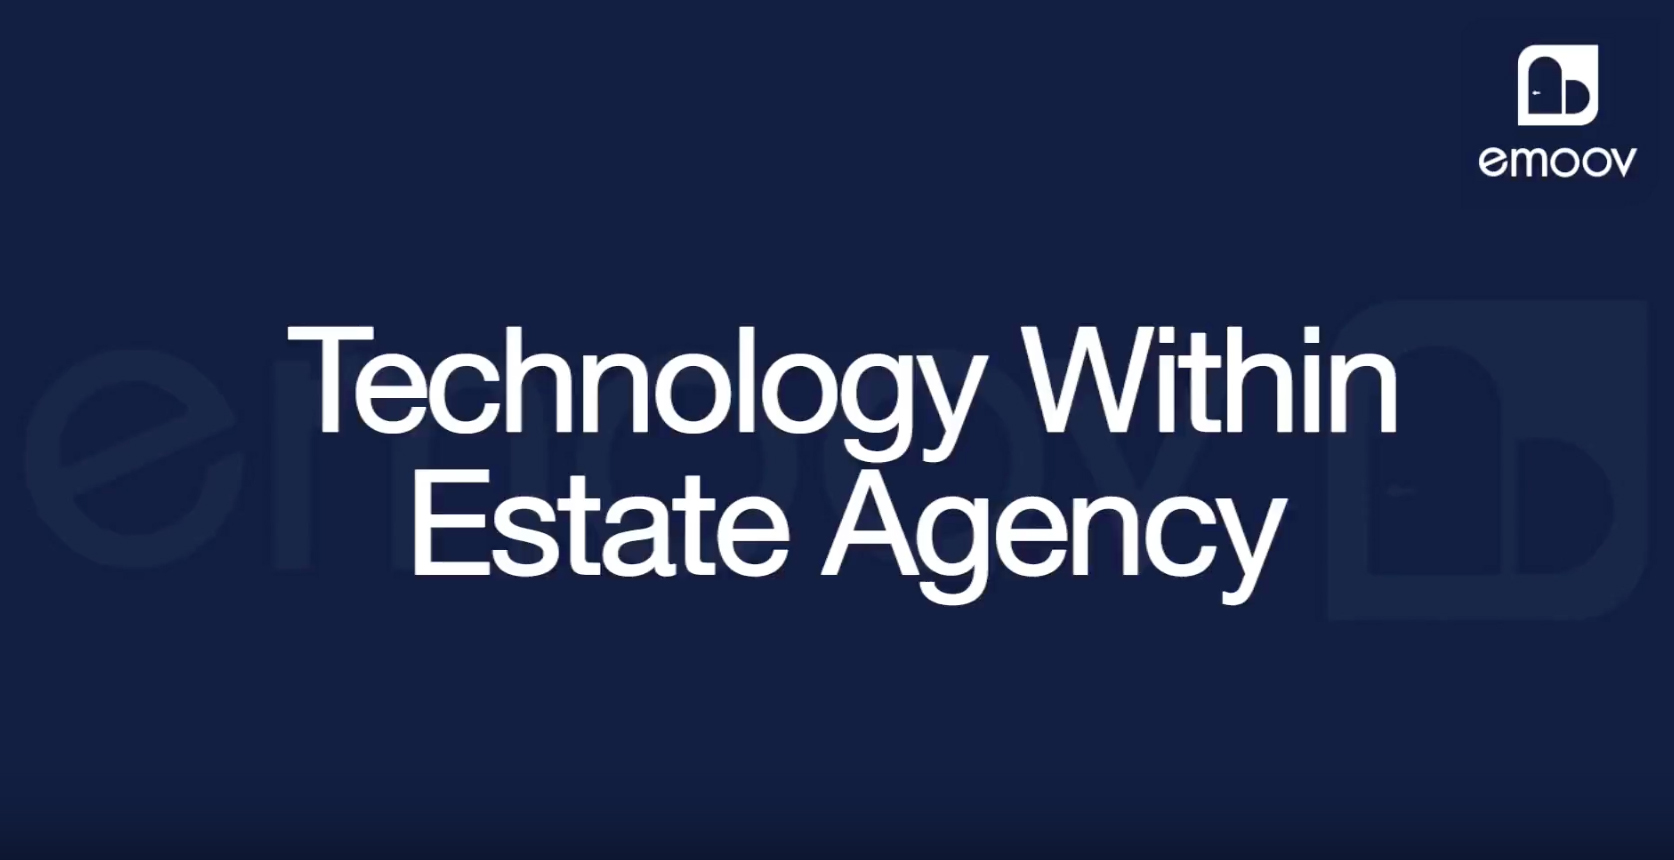 Technology Within Estate Agency